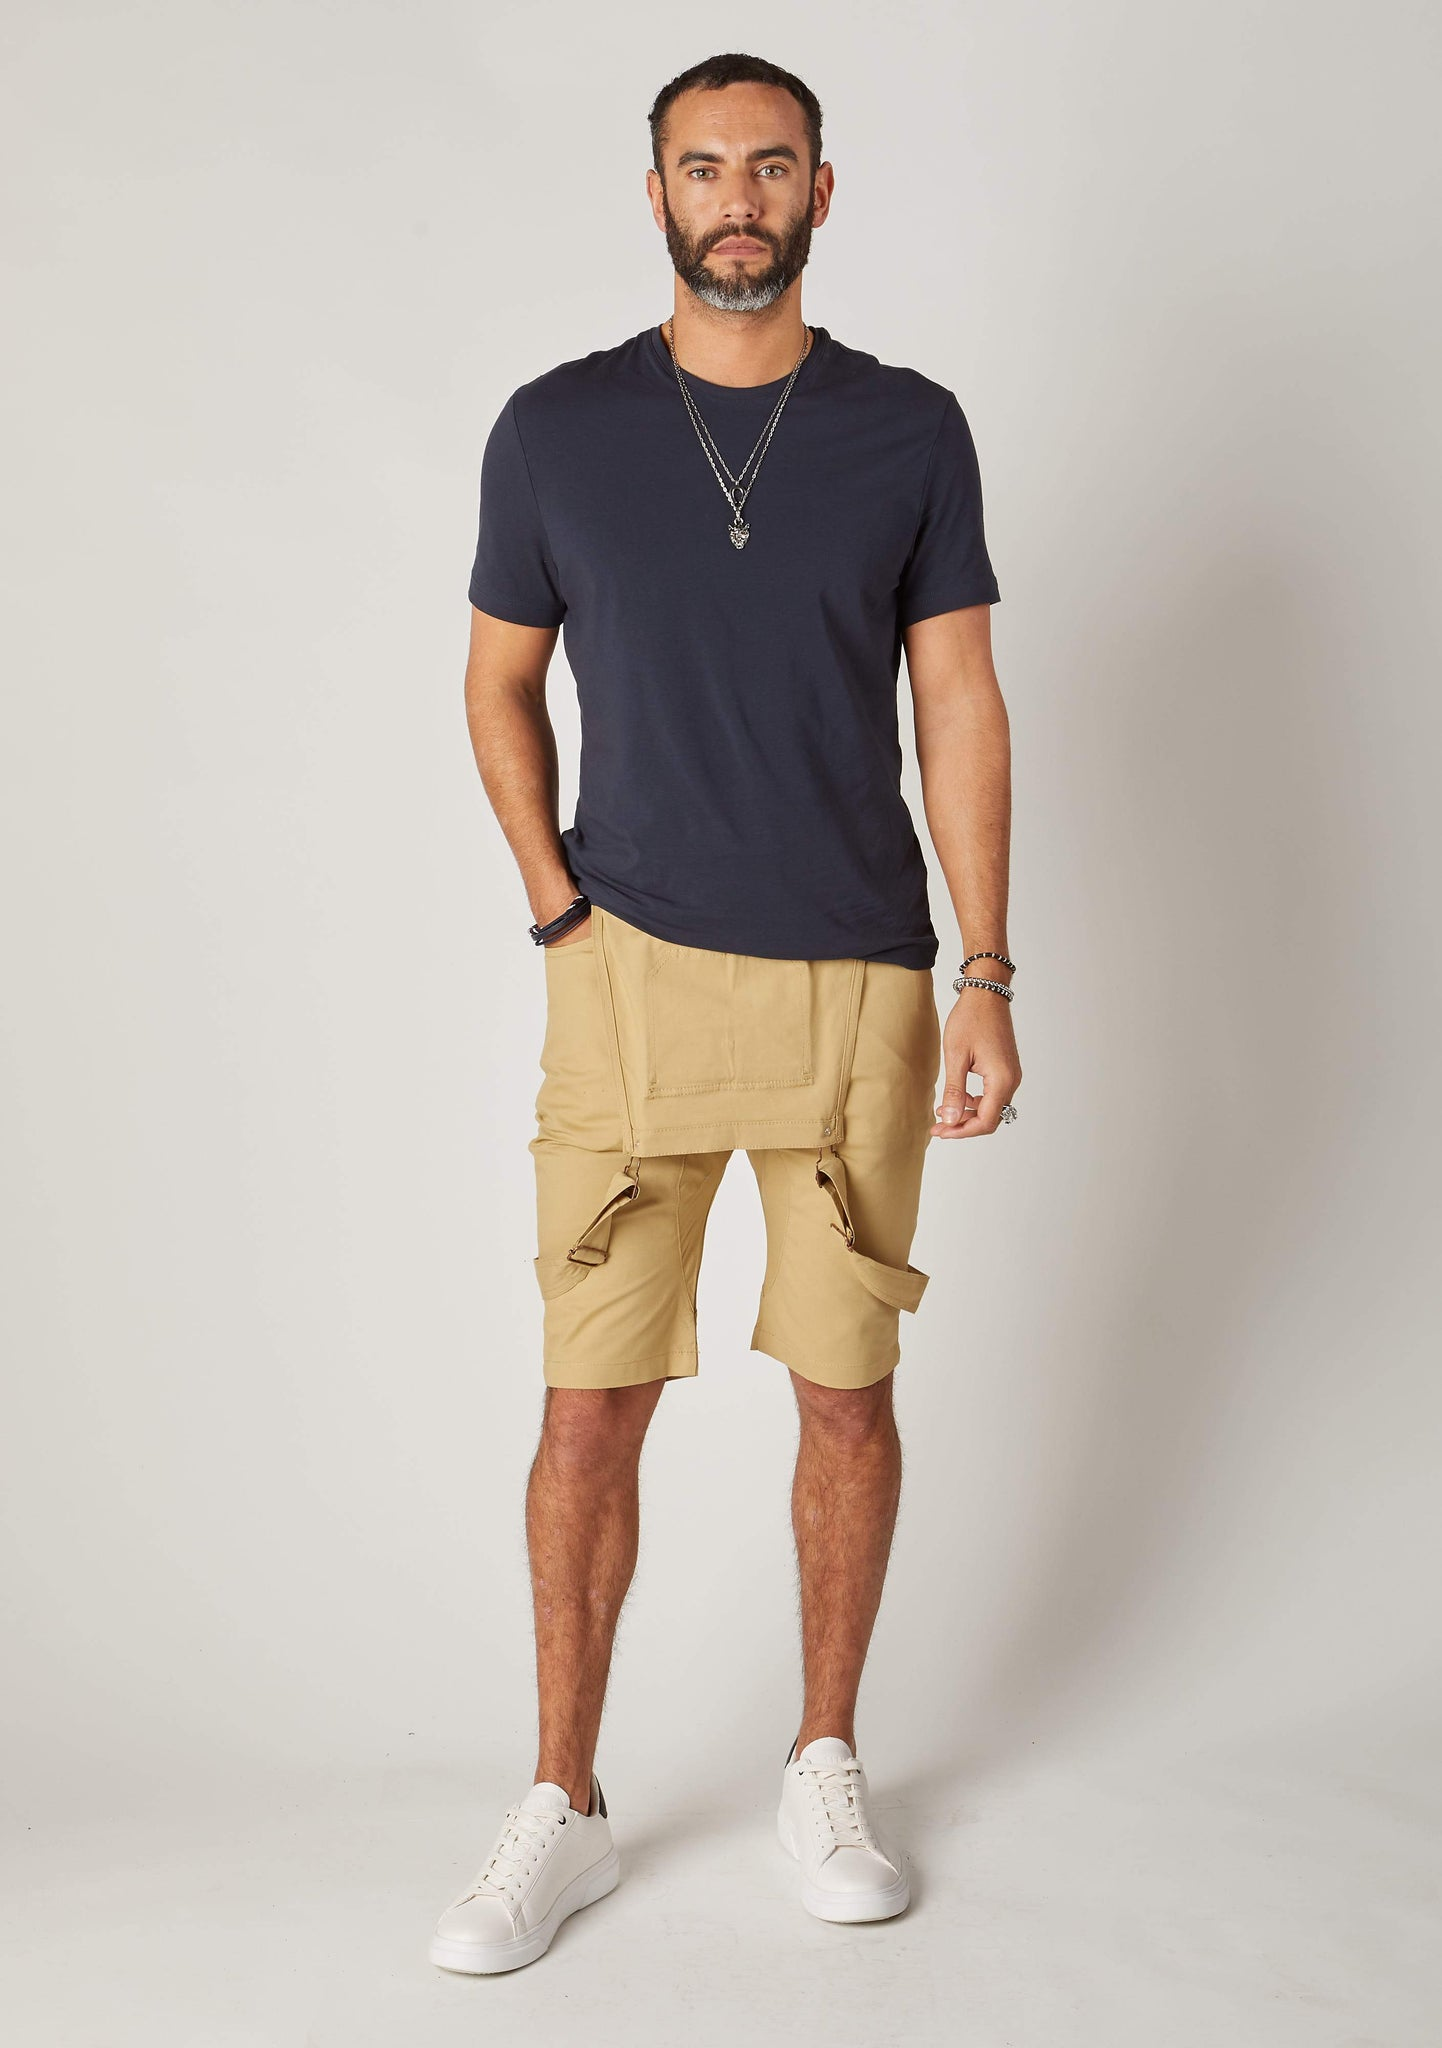 Full frontal bib-down view of slim-fit, khaki cotton bib-overall shorts from Dungarees Online, revealing dark grey t-shirt.